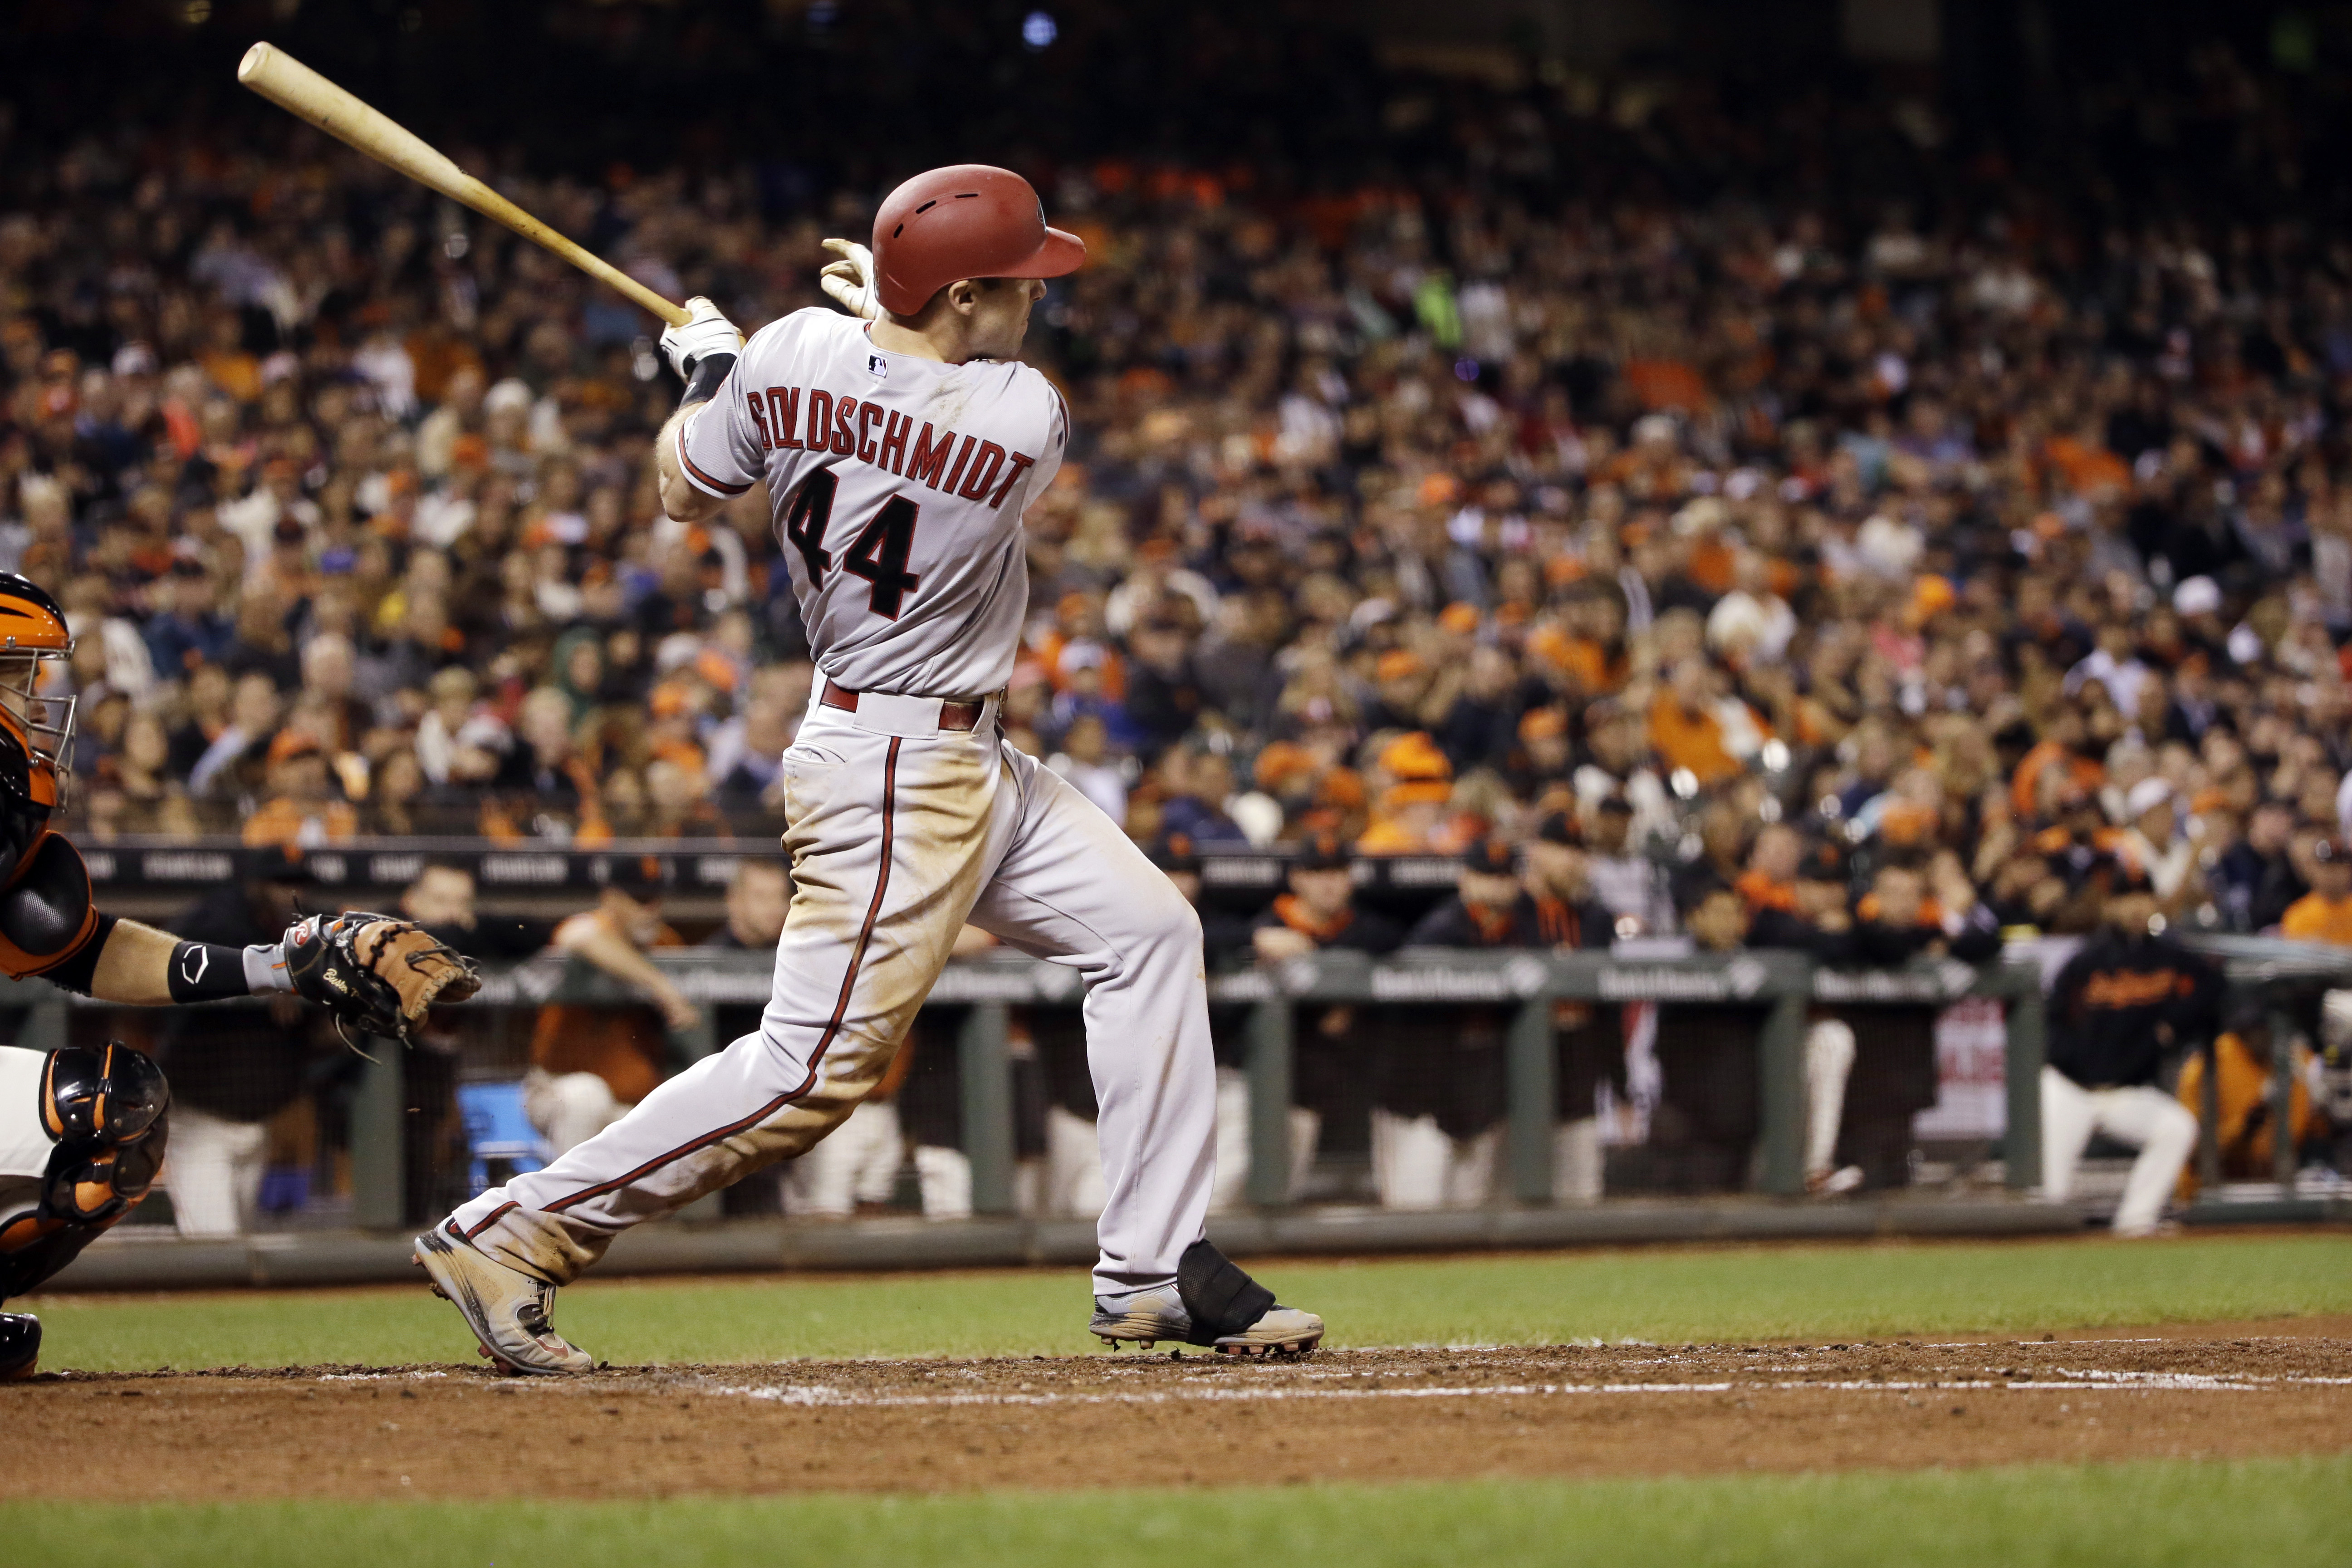 Arizona Diamondbacks' Paul Goldschmidt drives in a run with a double against the San Francisco Giants during the sixth inning of a baseball game on Friday, Sept. 18, 2015, in San Francisco. (AP Photo/Marcio Jose Sanchez)